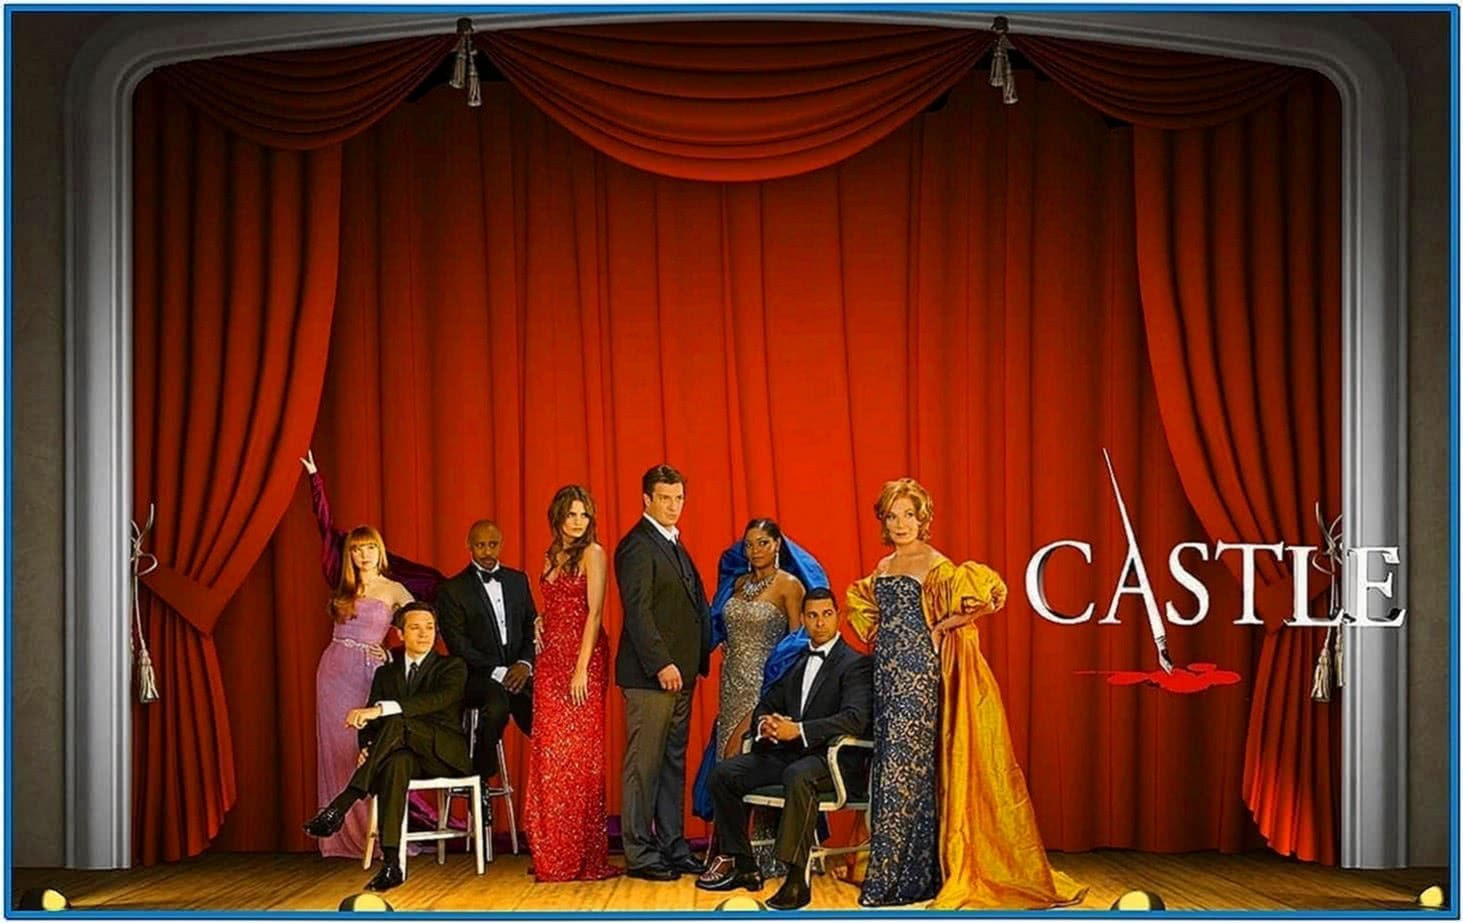 Castle TV Series Screensaver